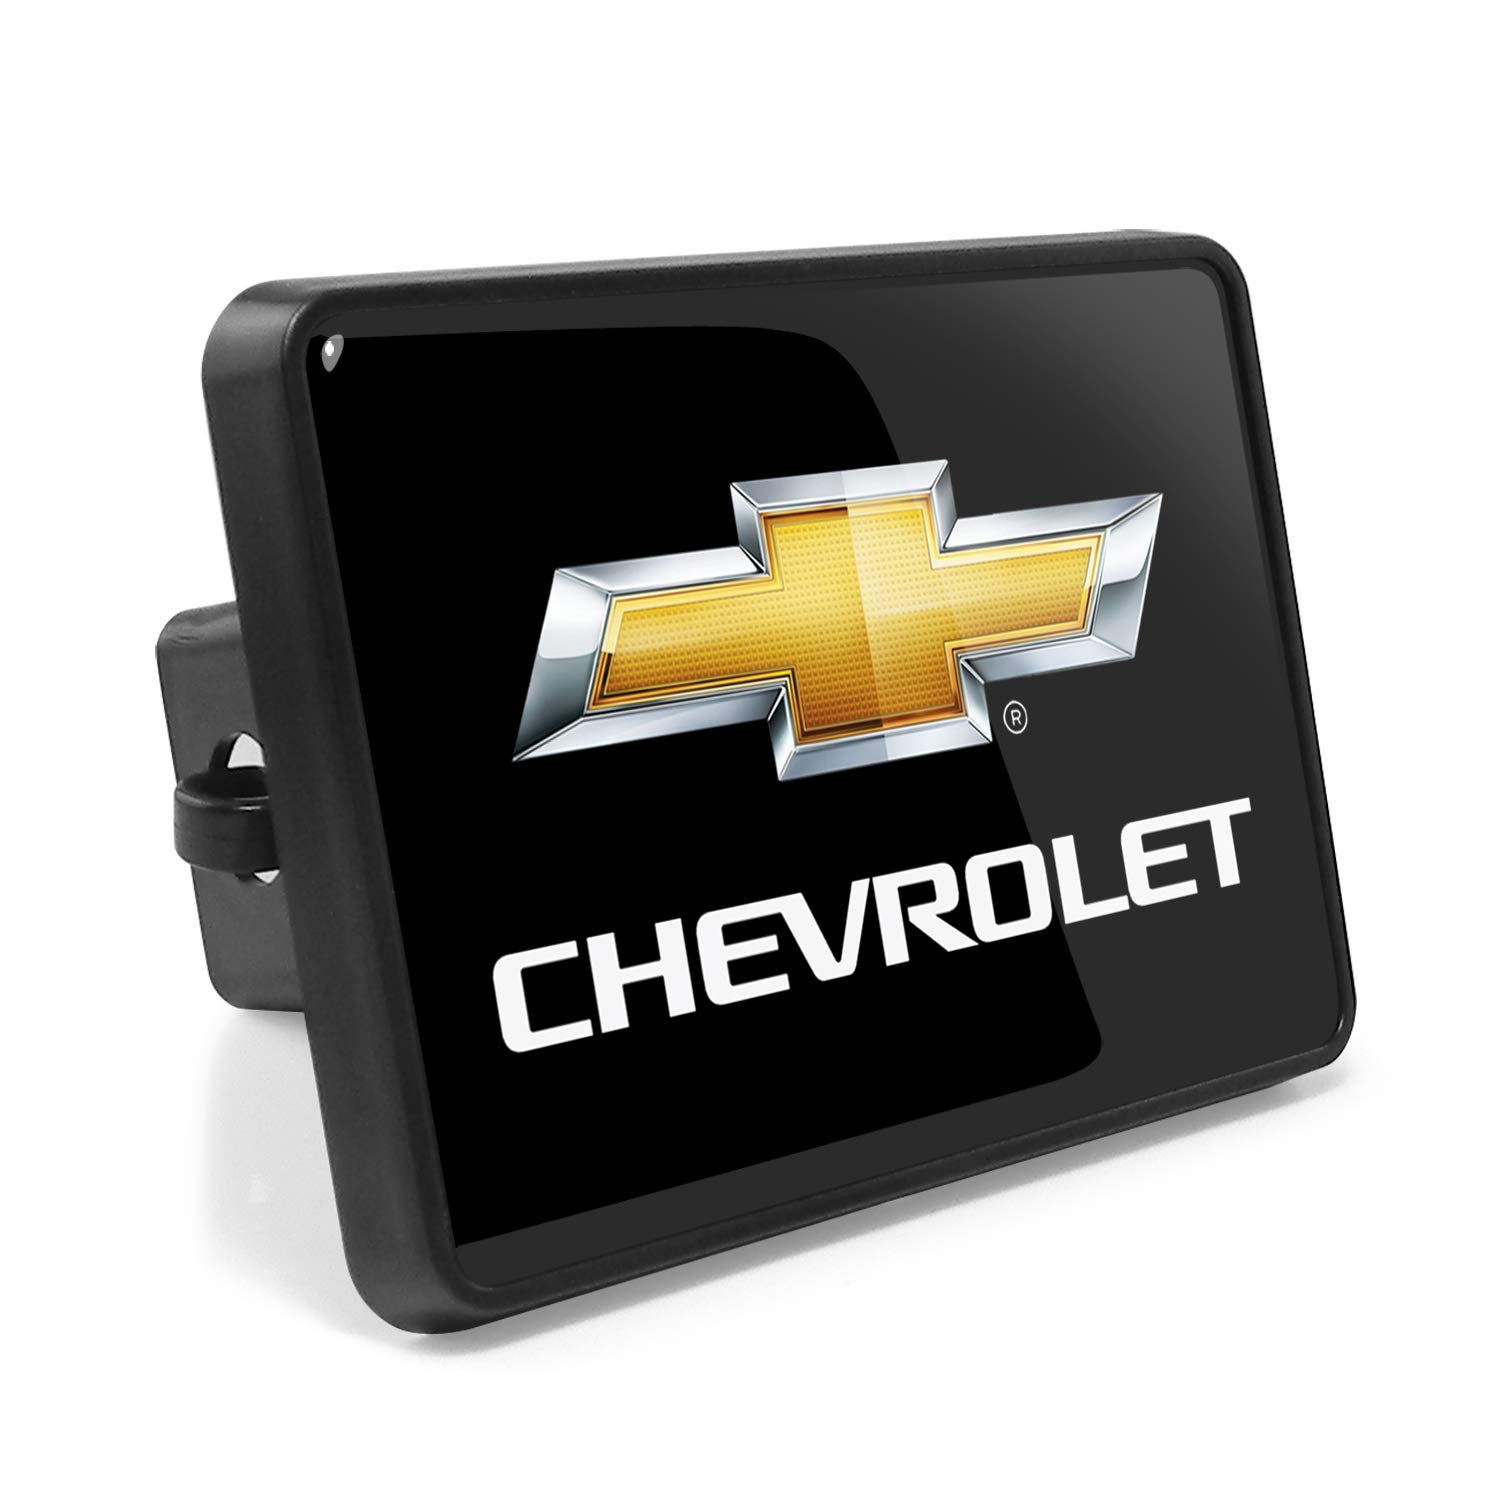 Chevrolet UV Resistant Graphic Black Metal Plate on ABS Plastic 2 Tow Hitch Cover iPick Image for